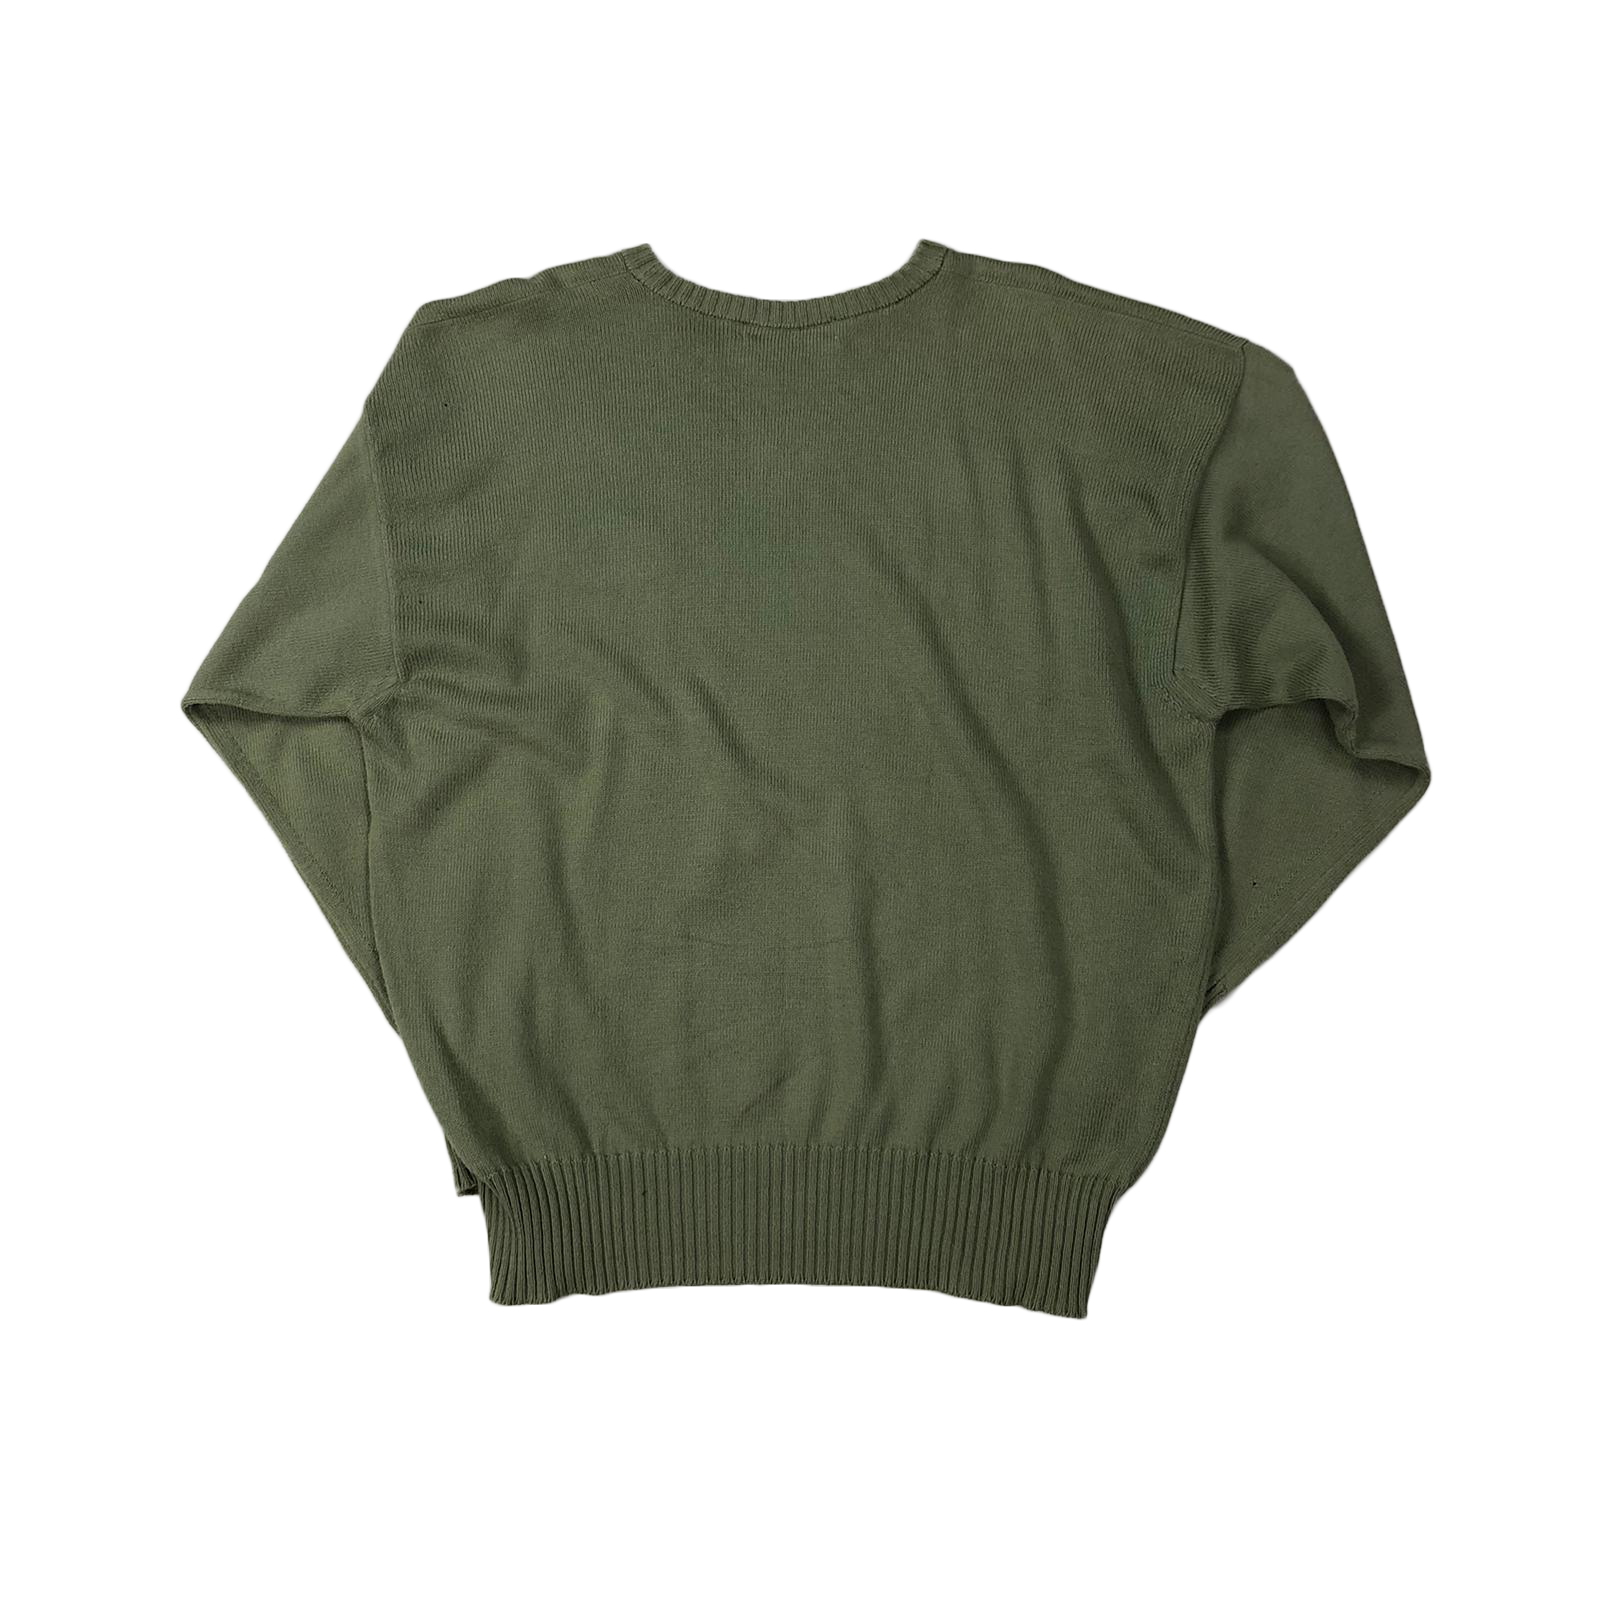 Burberry knit sweatshirt